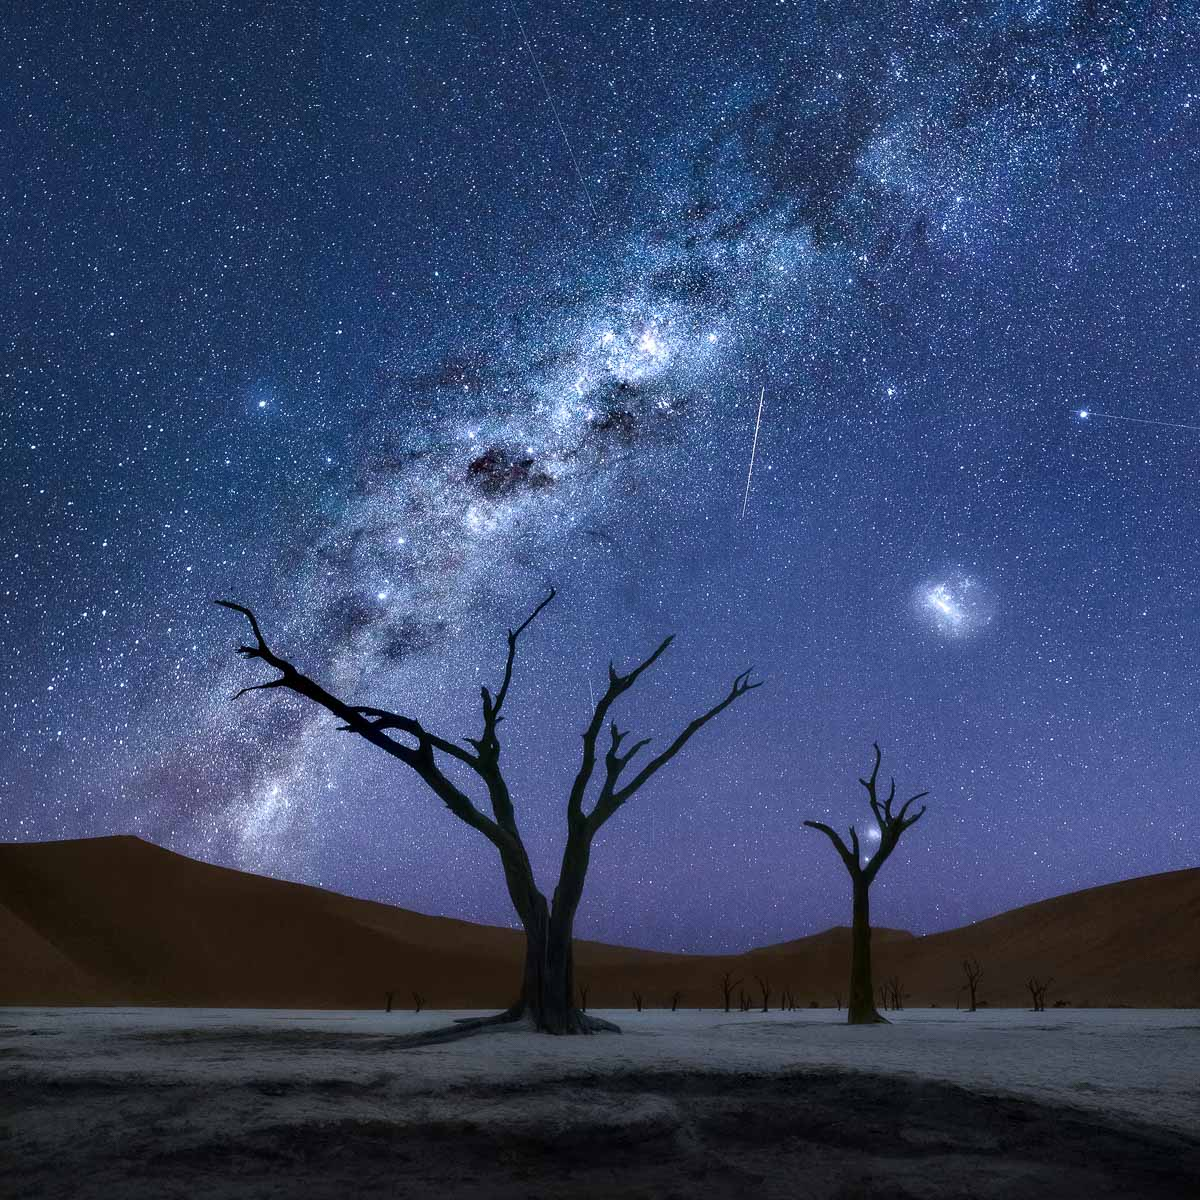 Milky Way at Deadvlei Namibia night sky astrophotography